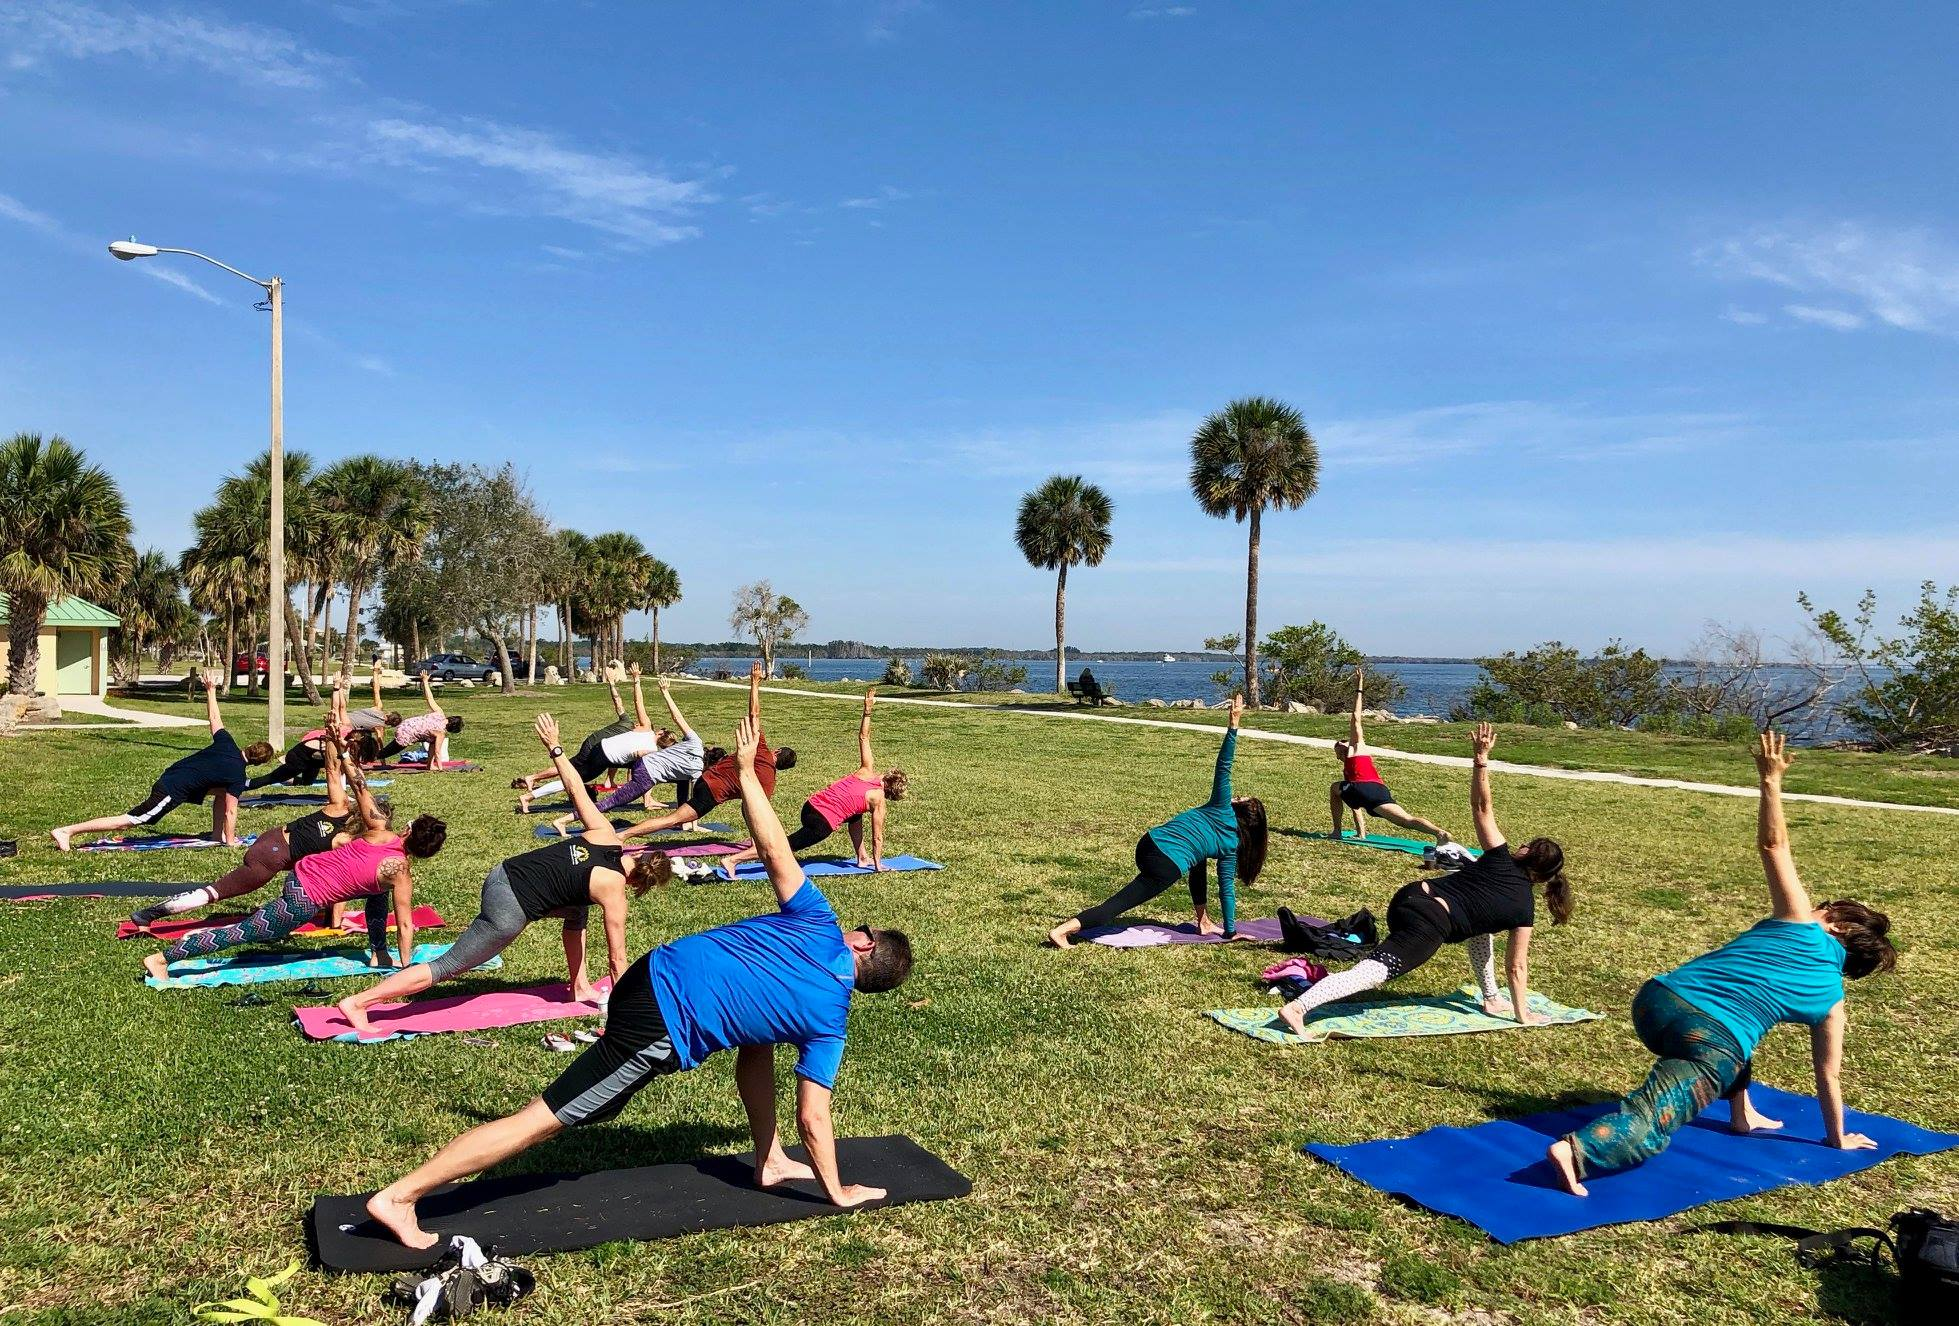 Titusville Yoga in the Park Sundays 9AM Sponsored by The Titusville Yoga Loft at Sand Point Park 101 N Washington Ave, Titusville, Florida 11.jpg